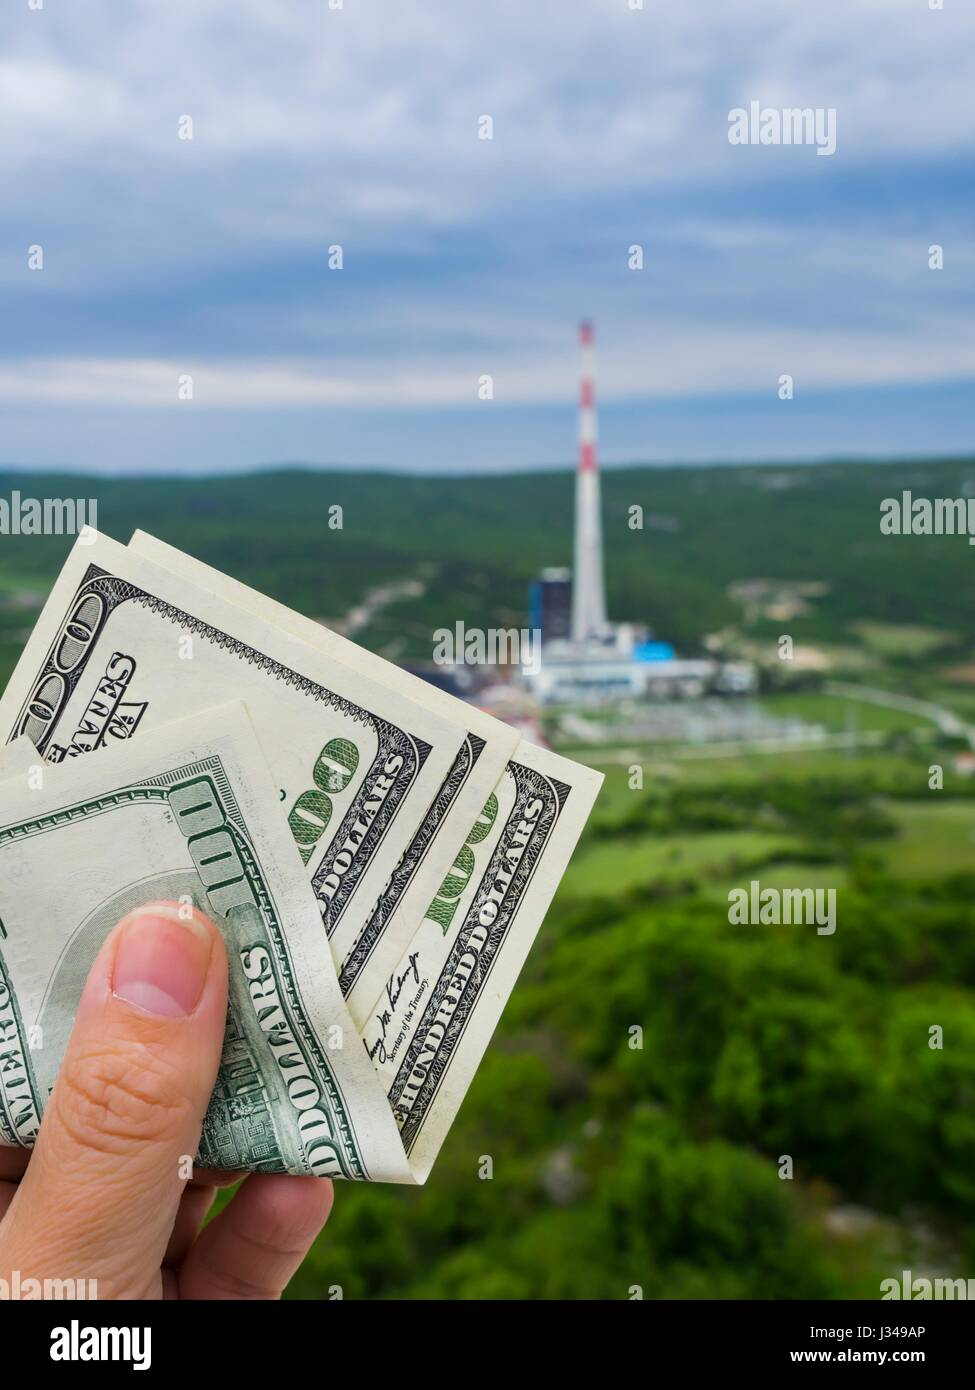 Cost of industry industrial growth and environmental risk risky funding fund unhealthy health , value valued , valuable - Stock Image